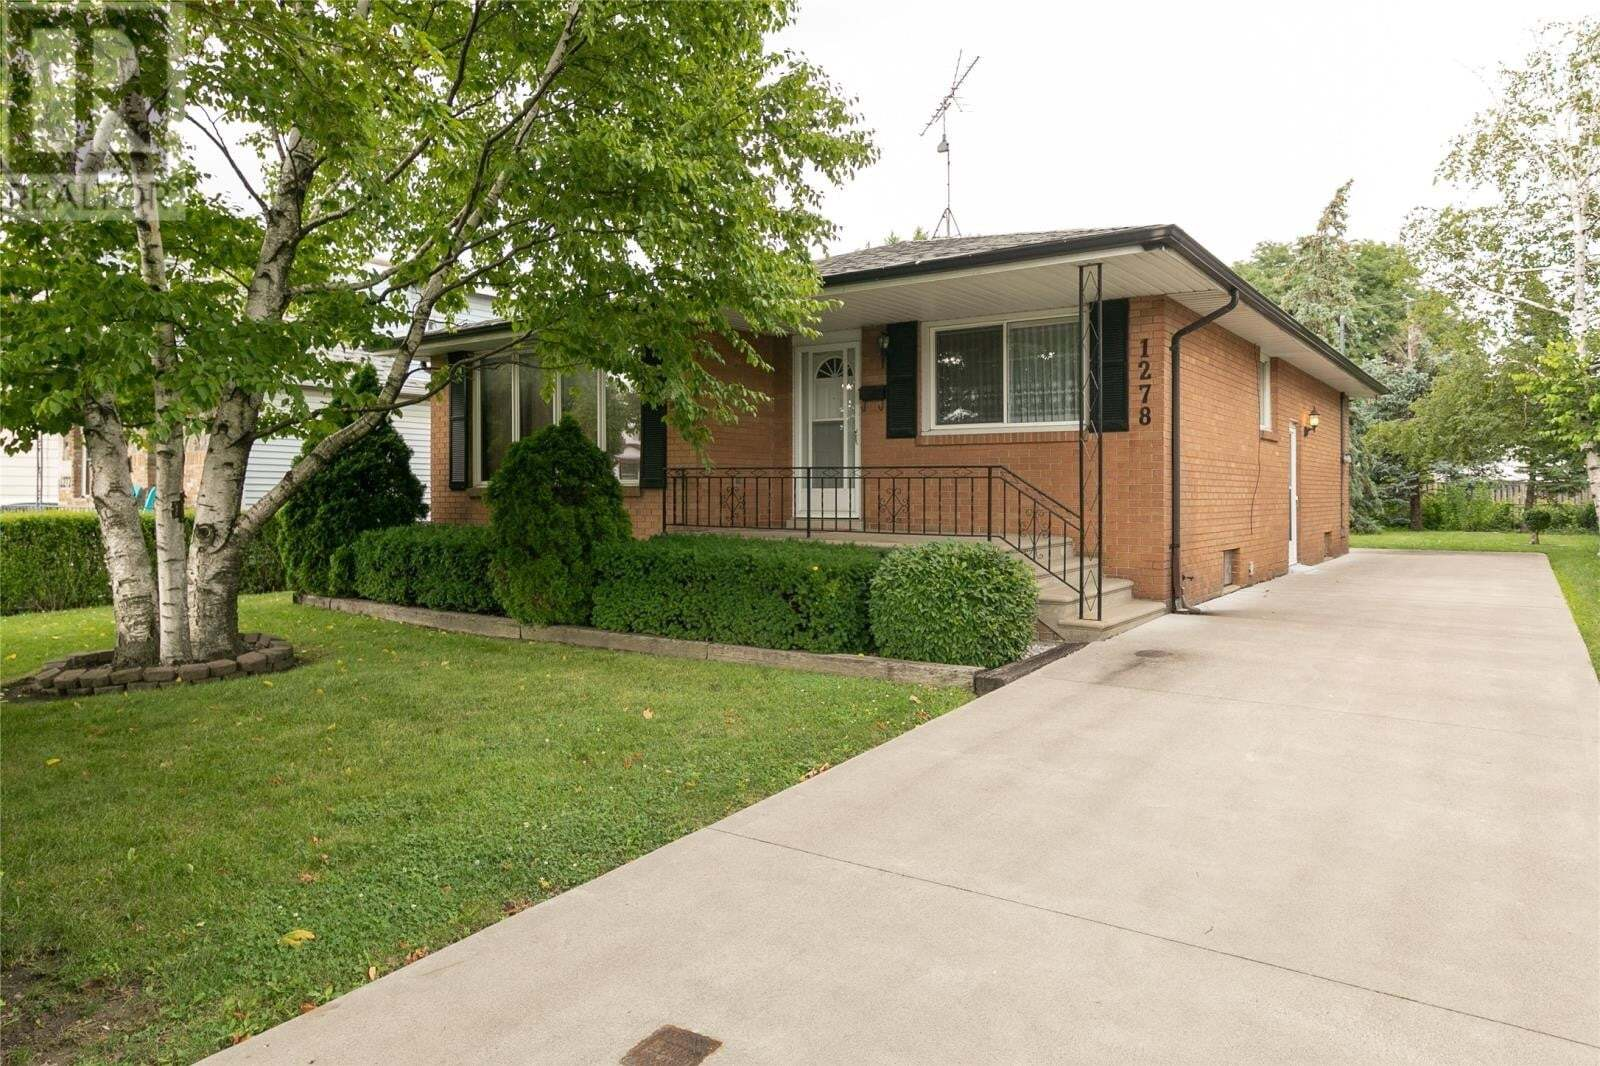 House for sale at 1278 Aubin Rd Windsor Ontario - MLS: 20009902